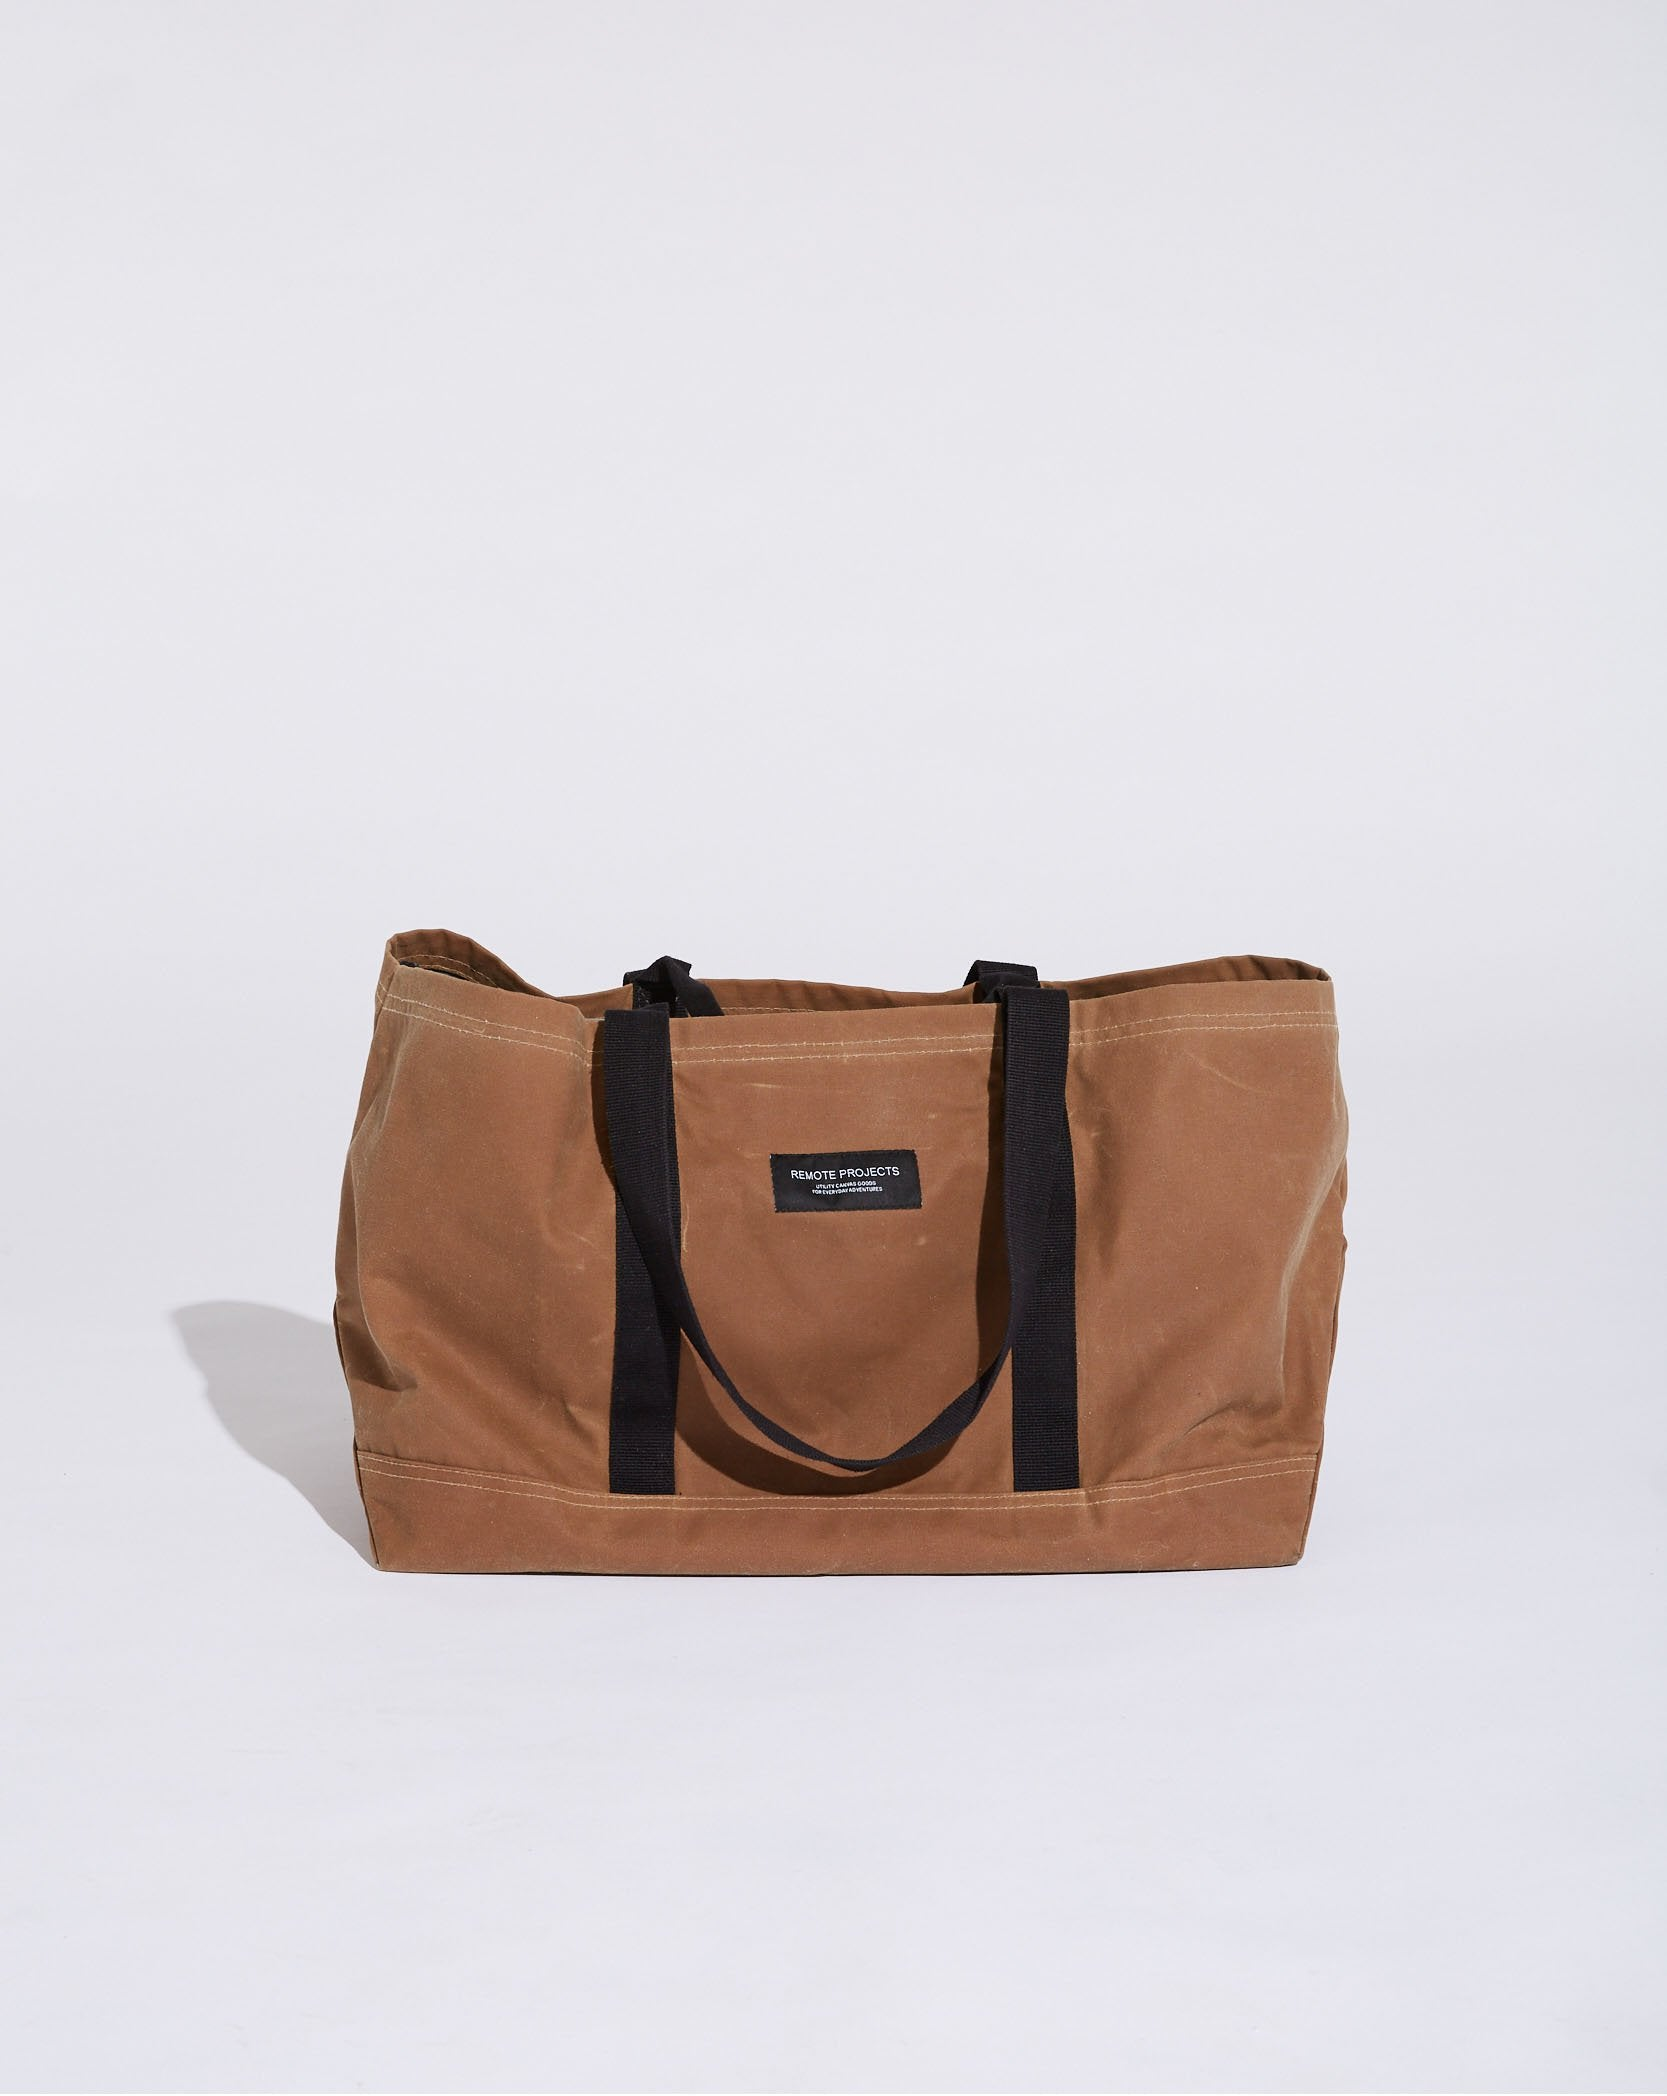 Remote Projects UTILITY BAG - DESERT | BLACK - Board Store Remote ProjectsBag